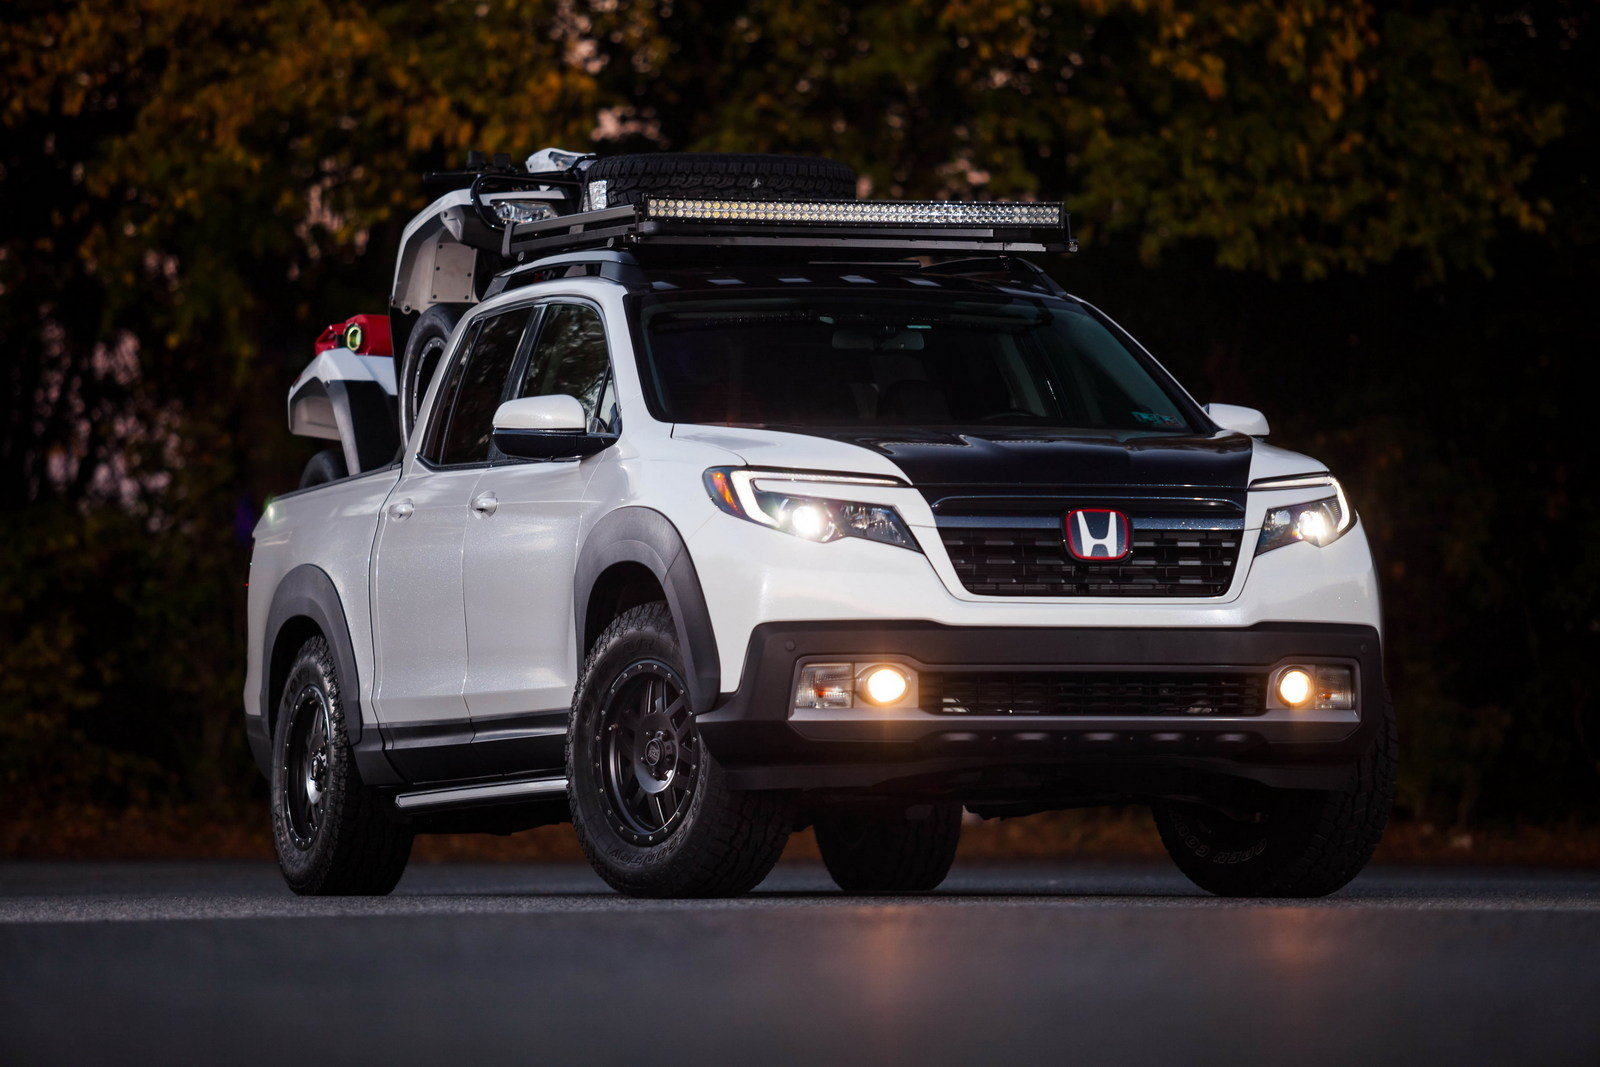 2017 Honda Ridgeline By FOX Marketing - Picture 693411 ...